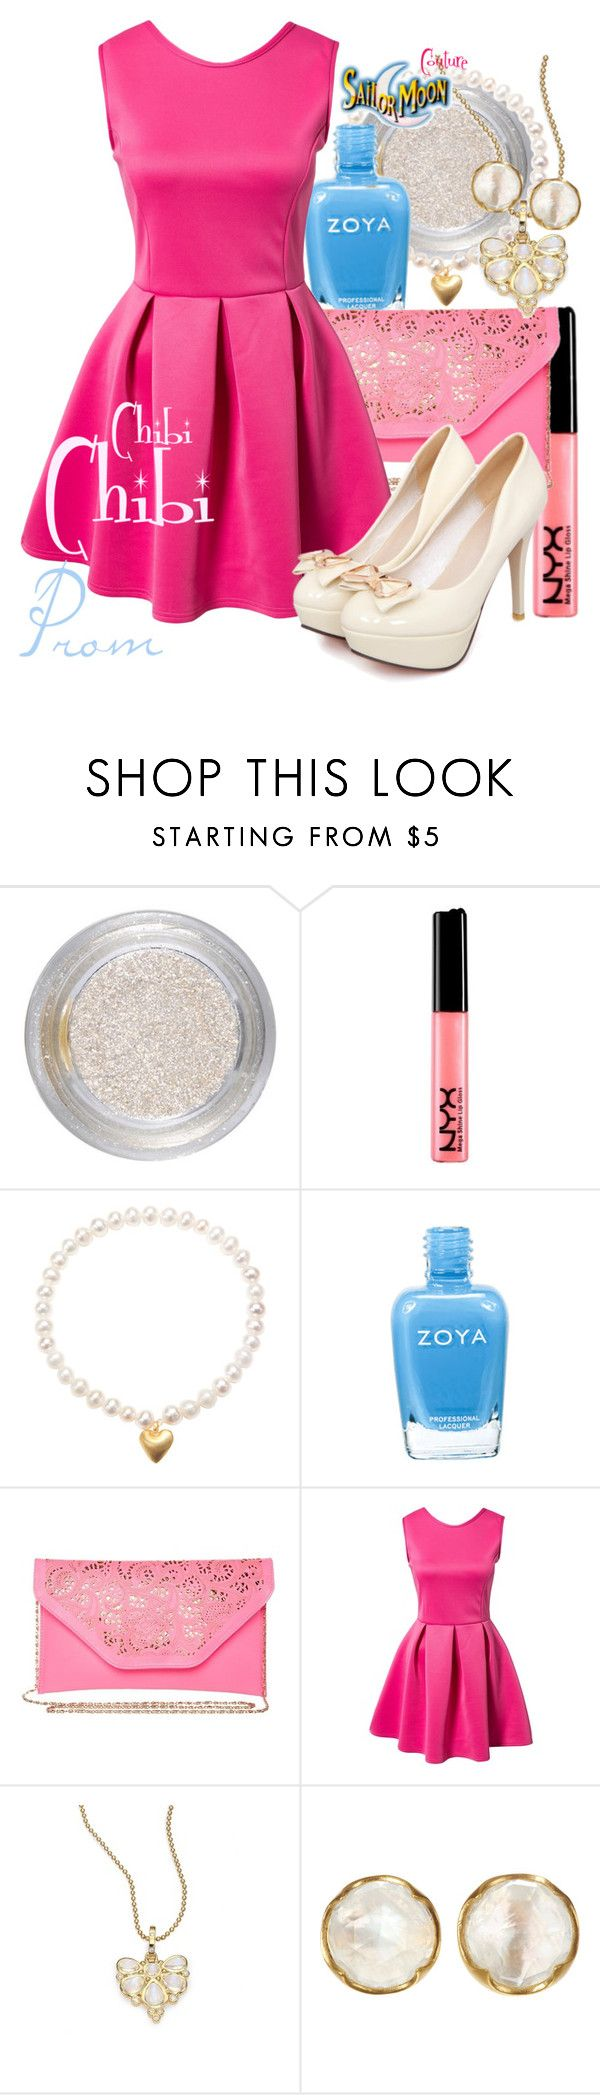 """ChibiChibi"" by sailormooncloset ❤ liked on Polyvore featuring Barry M, NYX, Satya Jewelry, Zoya, Molly Bracken, Oneness, Temple St. Clair and Cathy Waterman"